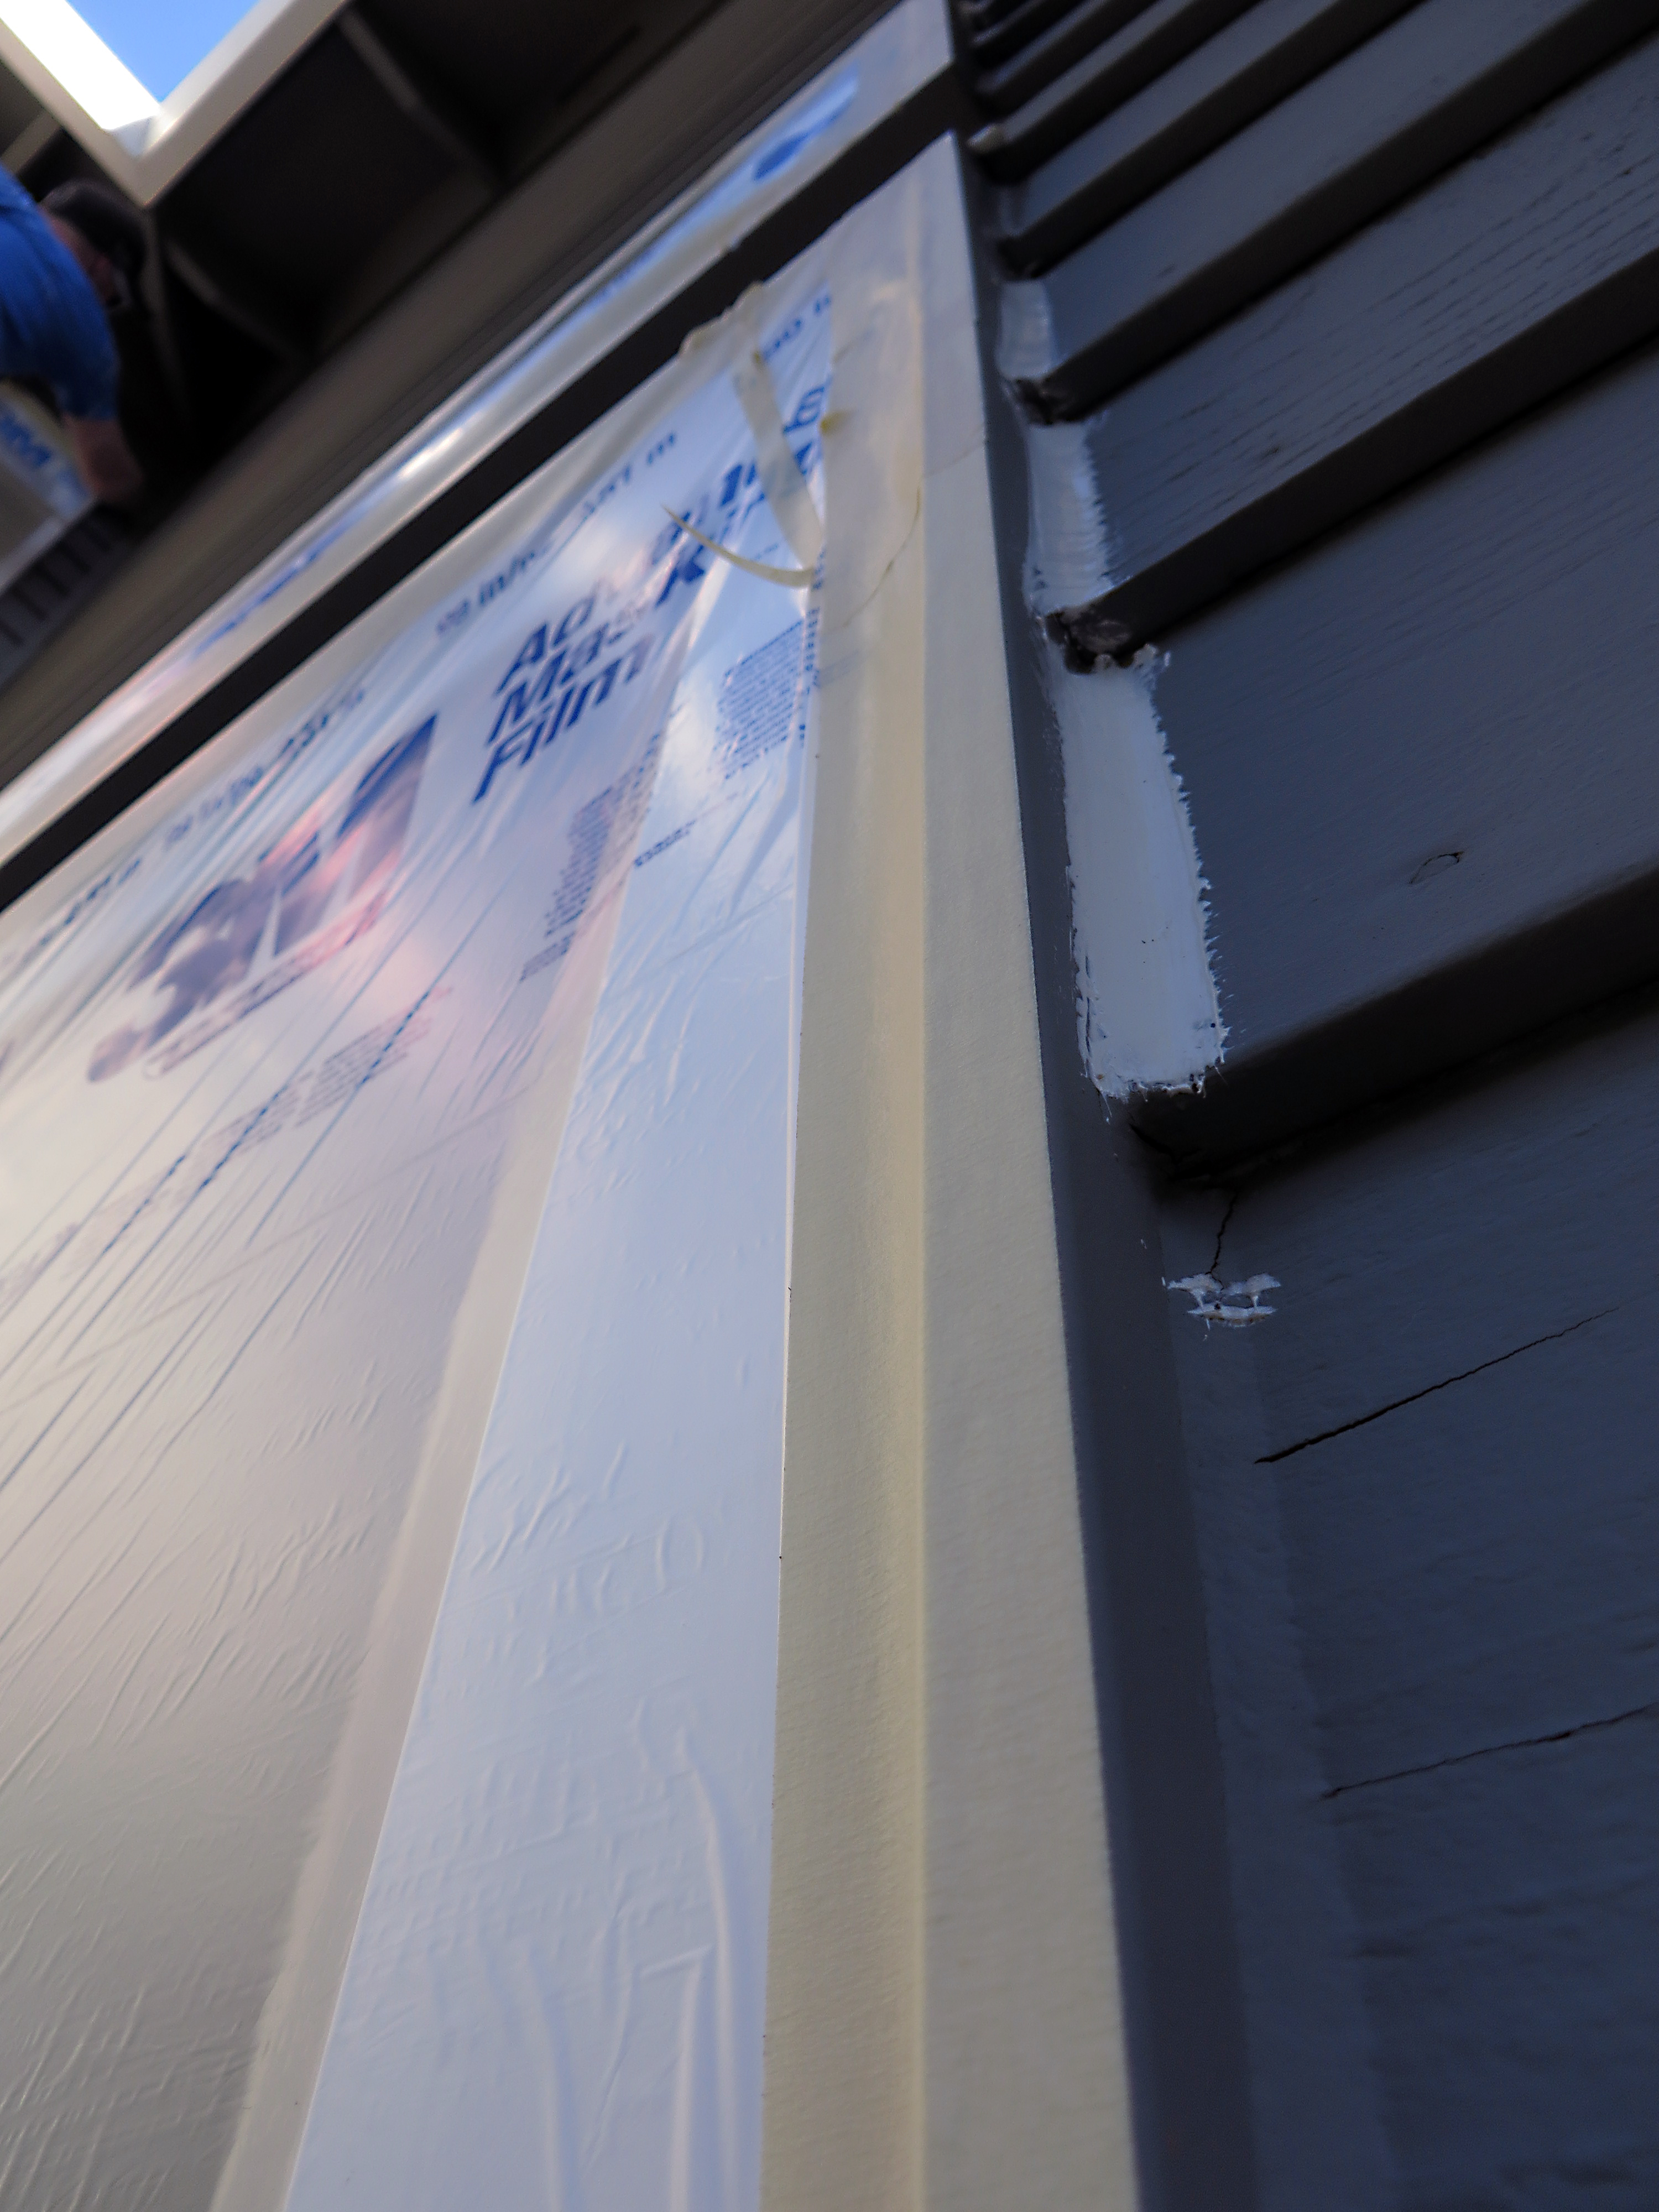 House Painting Tips from Portland Painting Pros